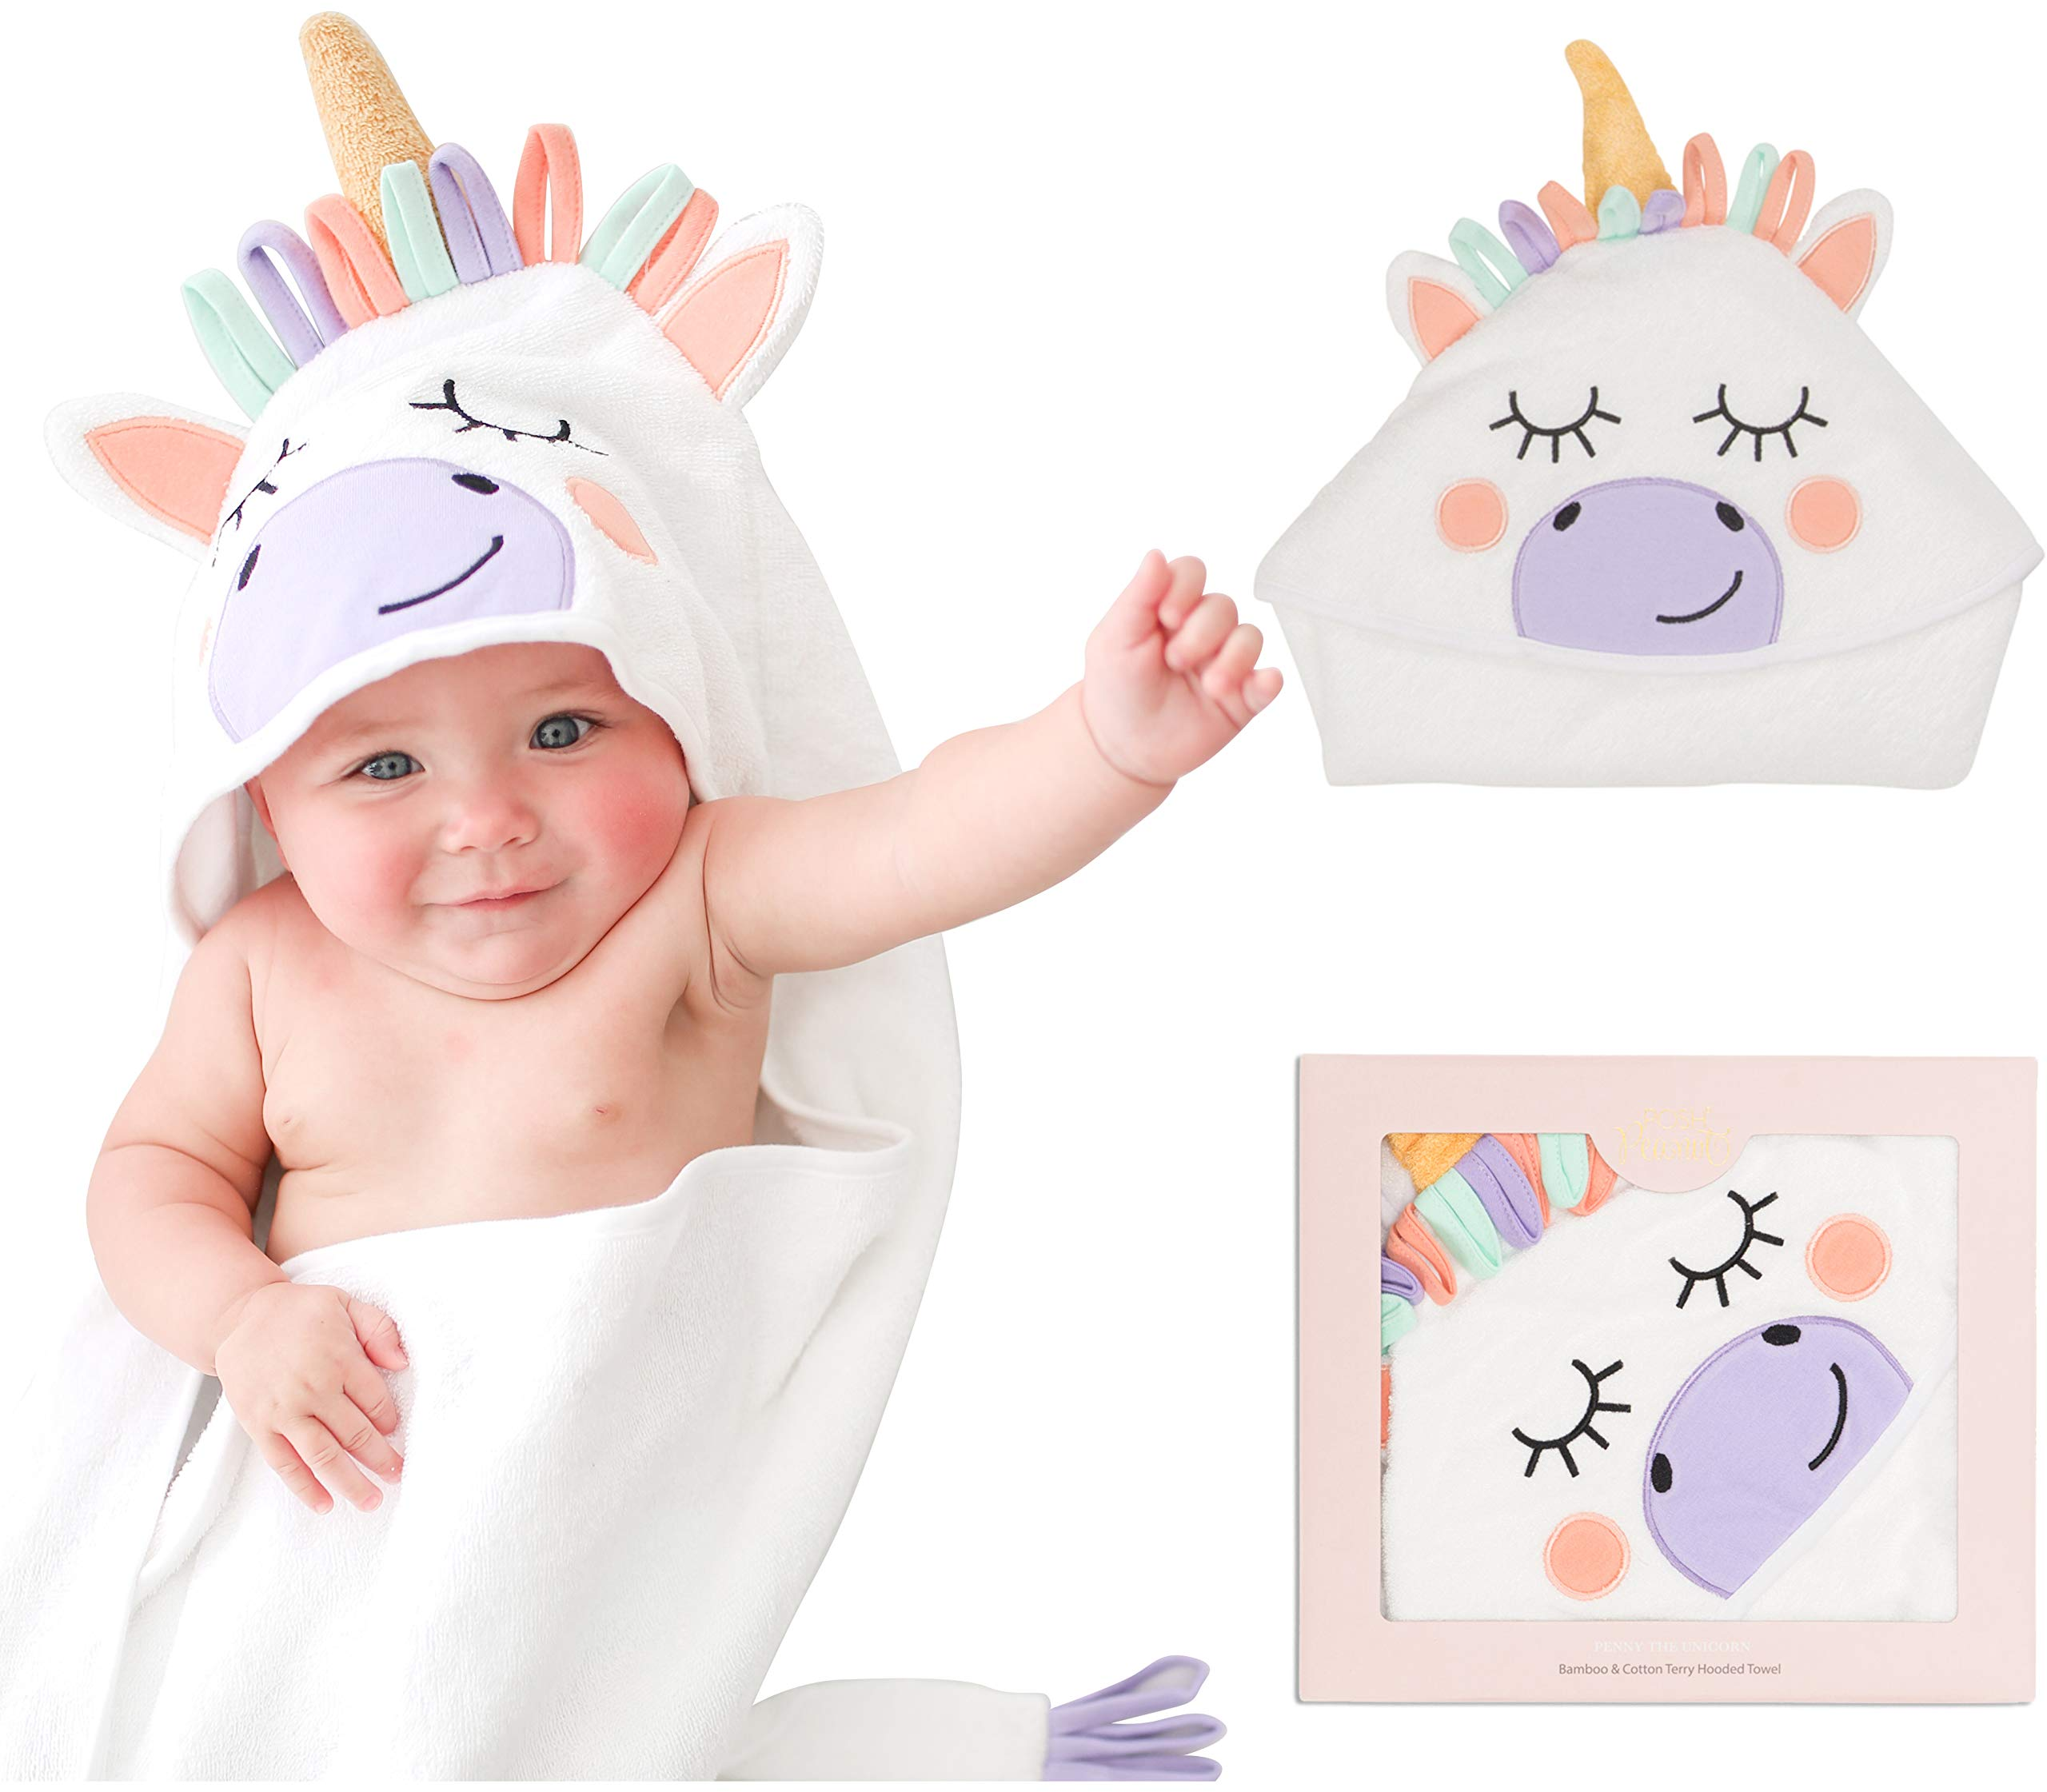 Posh Peanut Baby Hooded Towel - Highly Absorbent Cotton Infant Towel for The House, Beach, Pool - Super Soft Newborn Drying Bath Towel - Great Baby Shower Gift Idea (Unicorn) by Posh Peanut